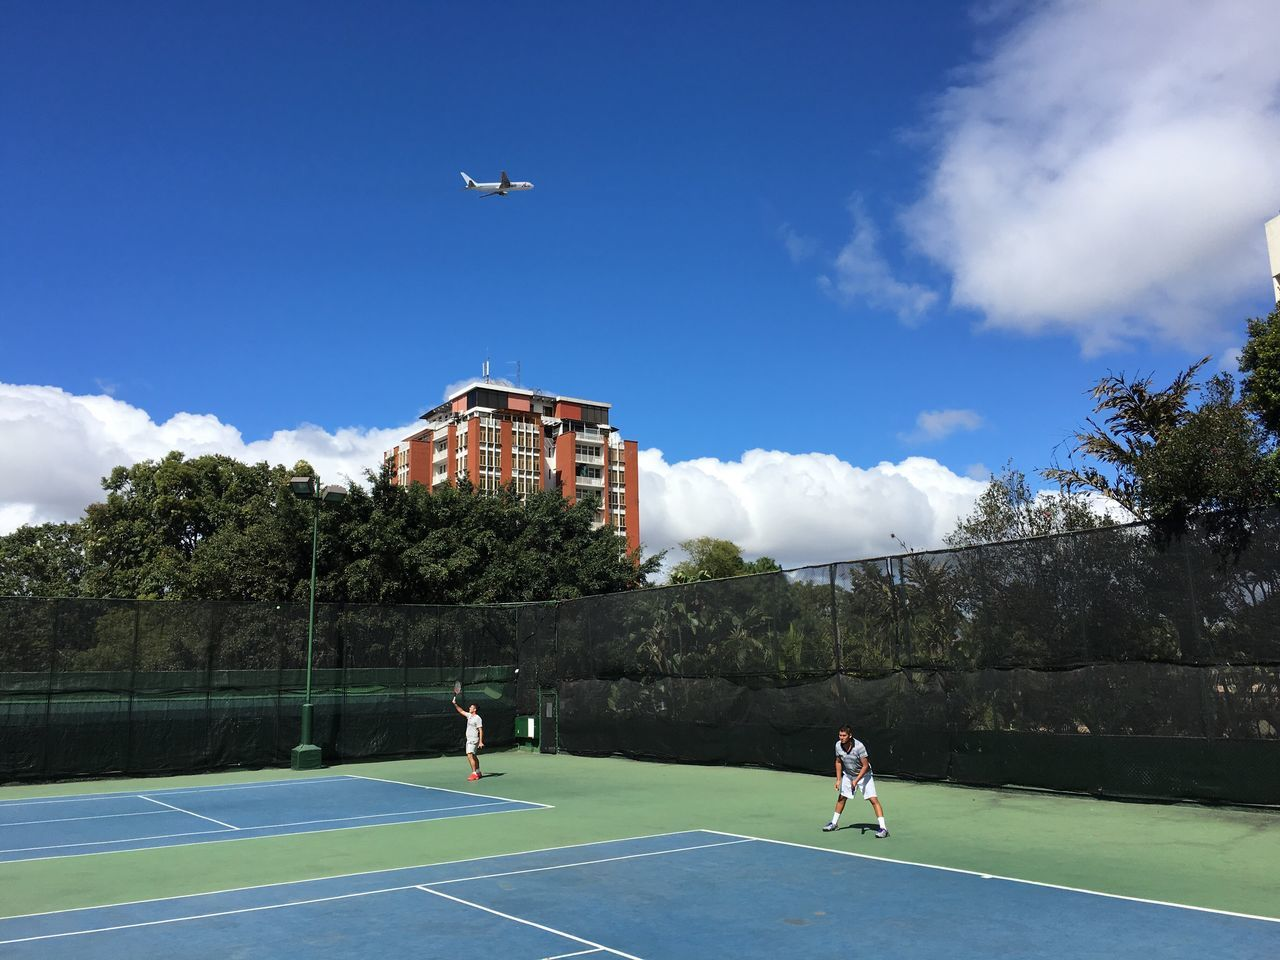 Tenniscourt Flying Transportation Airplane Flying Airplane Playing Tennis Clear Sky Blue Sky